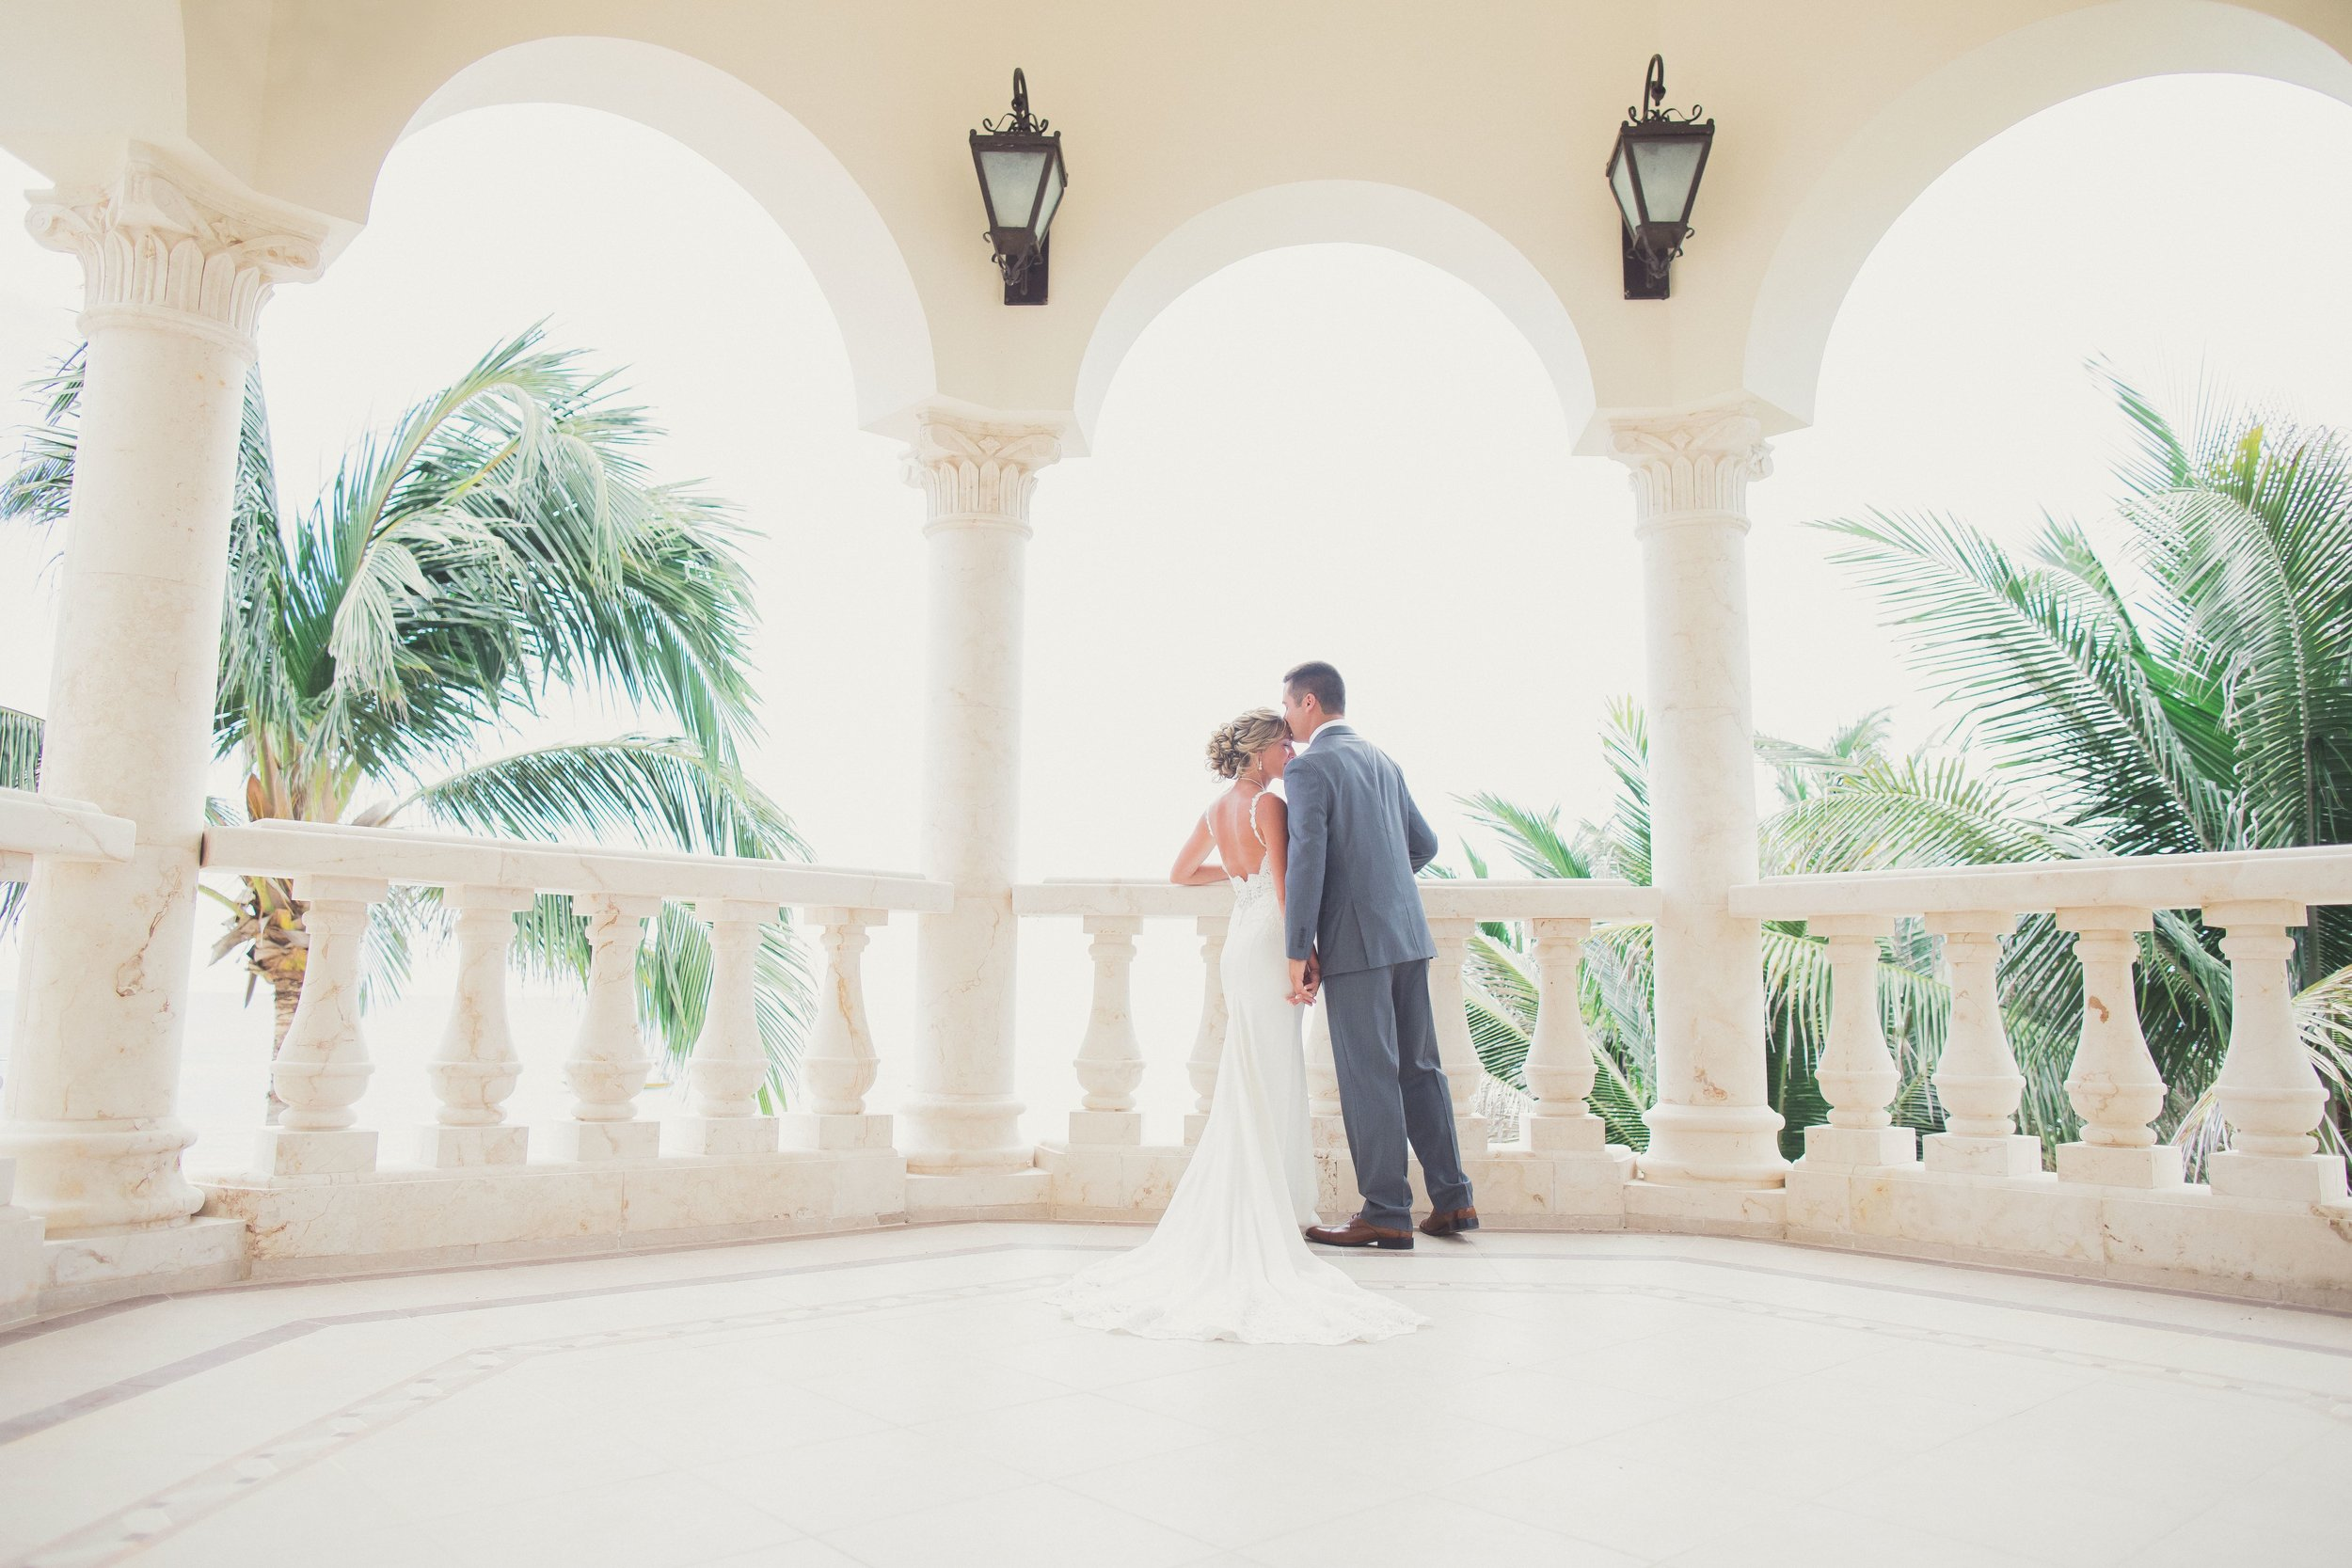 cancun-wedding-venue-villa-la-joya-49 copy-websize.jpg